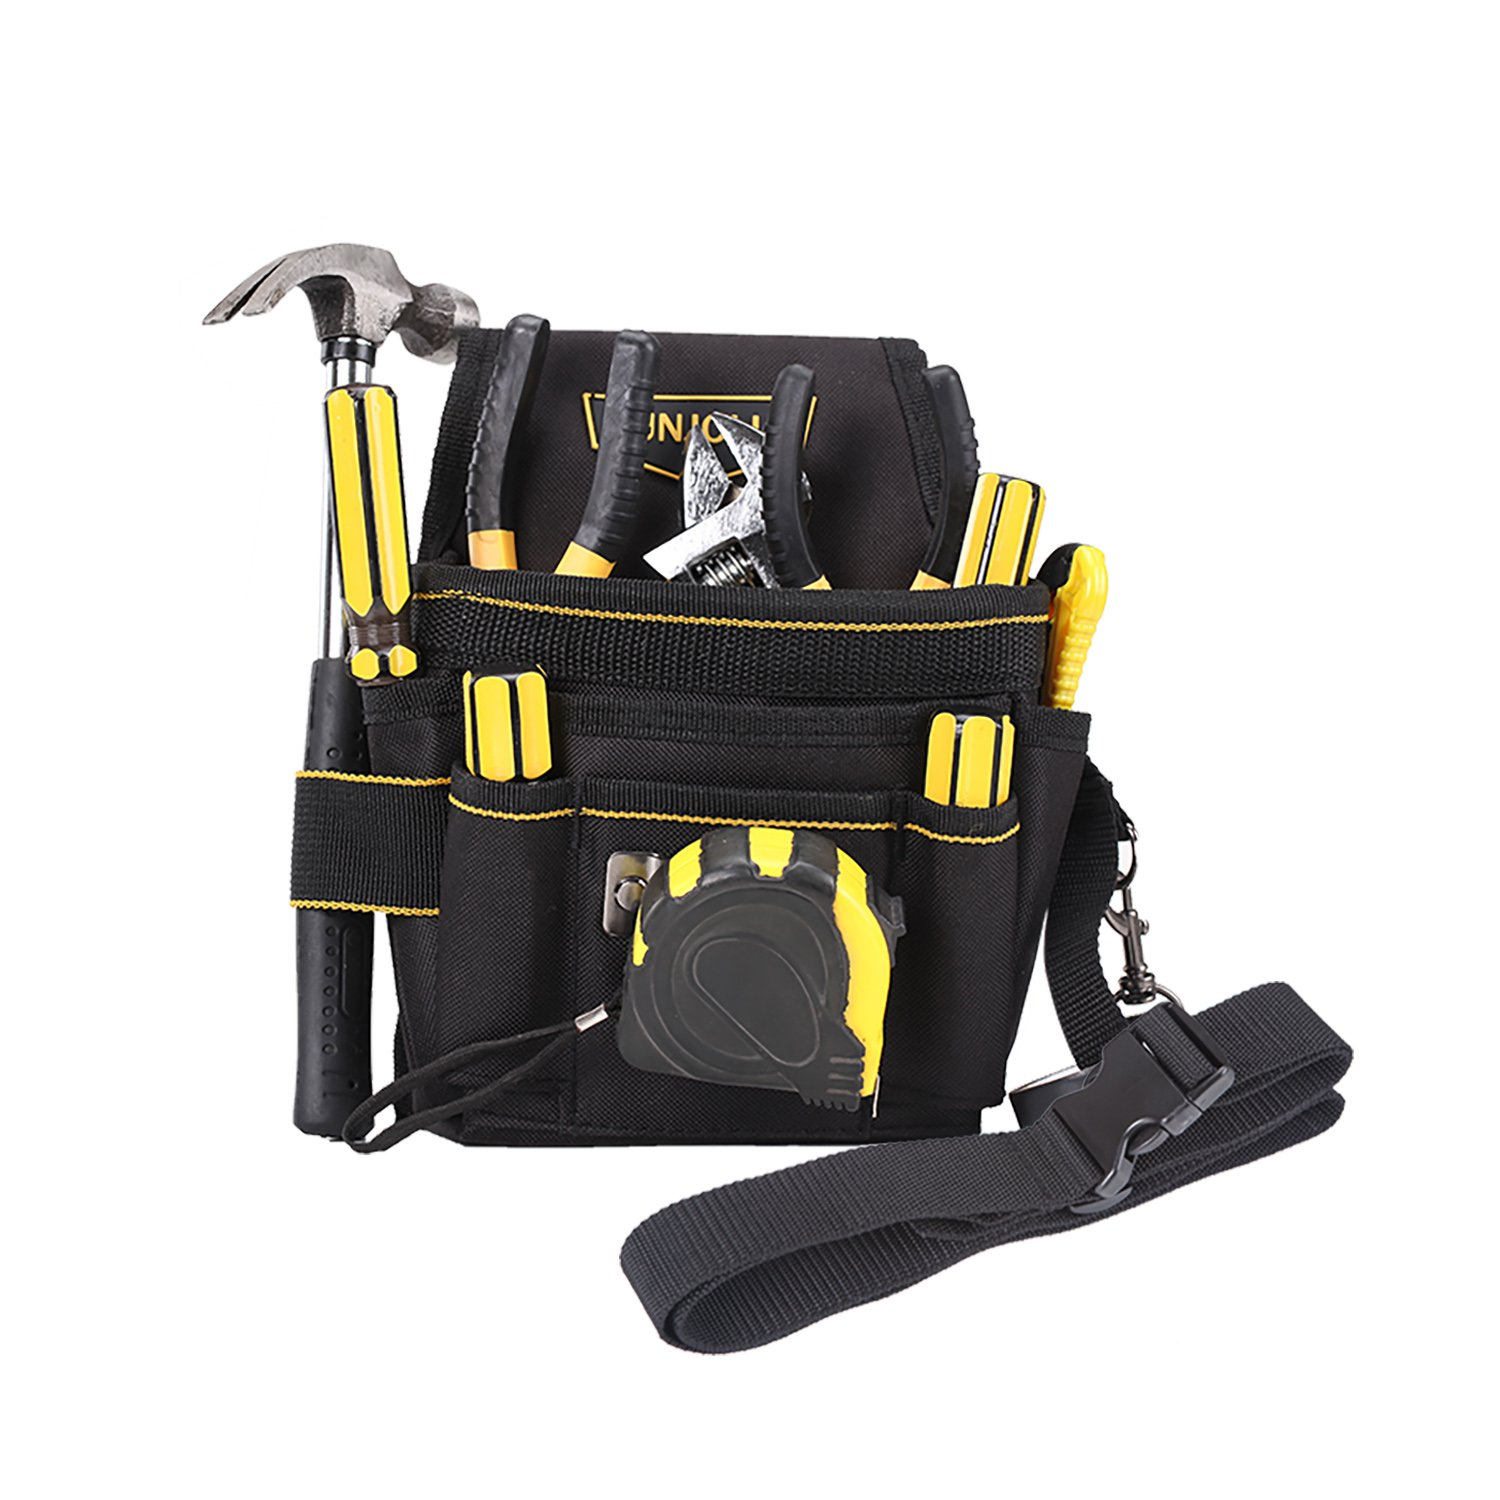 Small Durable Tool Pouch with Maintenance and Electrician's Holsters for Tools, Flashlight, Keys (Adjustable Waist Strap) (Large)